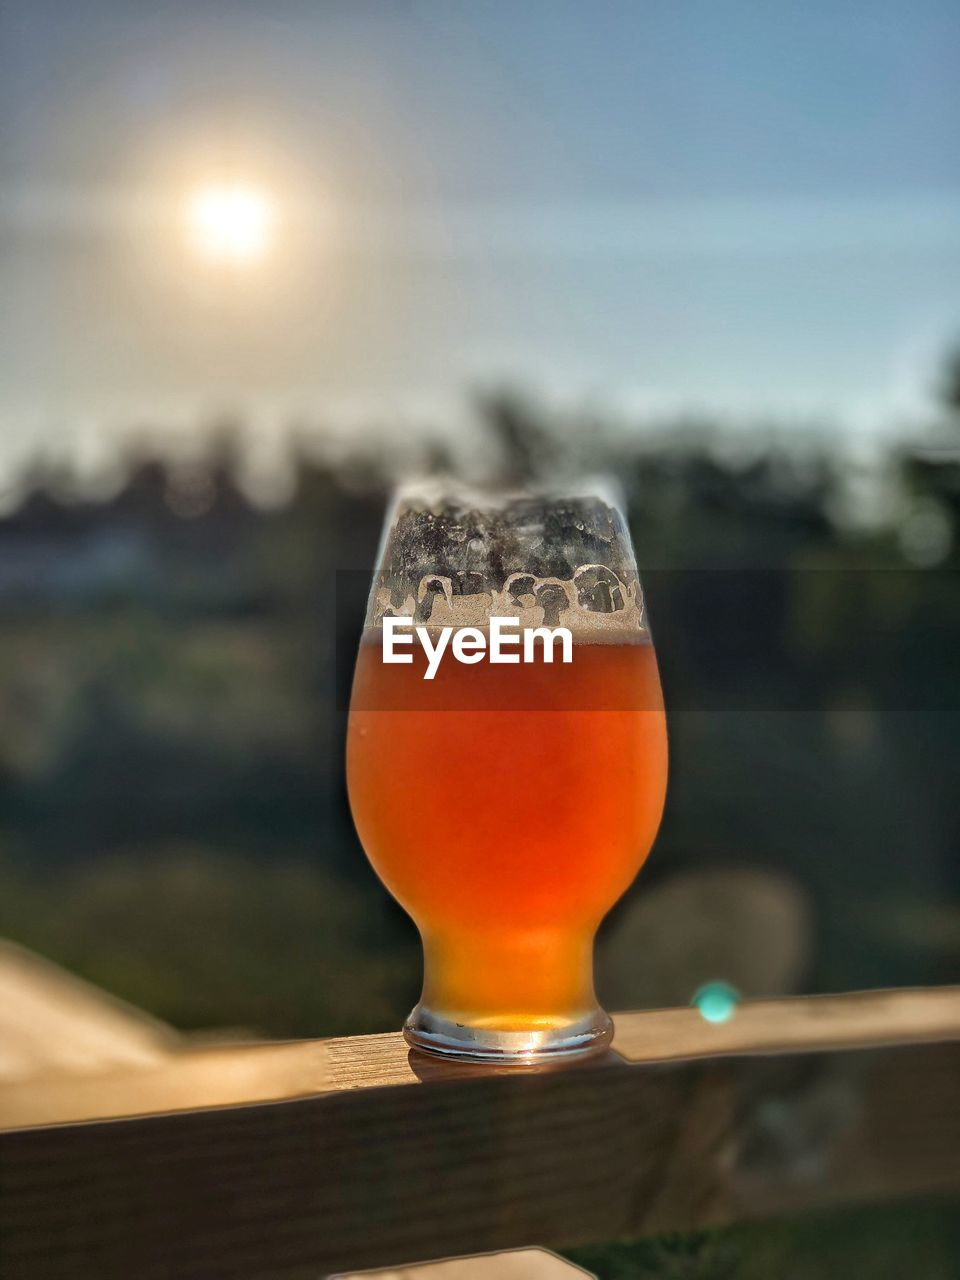 food and drink, drink, refreshment, focus on foreground, glass, alcohol, table, beer, close-up, freshness, beer - alcohol, sky, household equipment, drinking glass, glass - material, still life, sunlight, beer glass, no people, wood - material, outdoors, aperitif